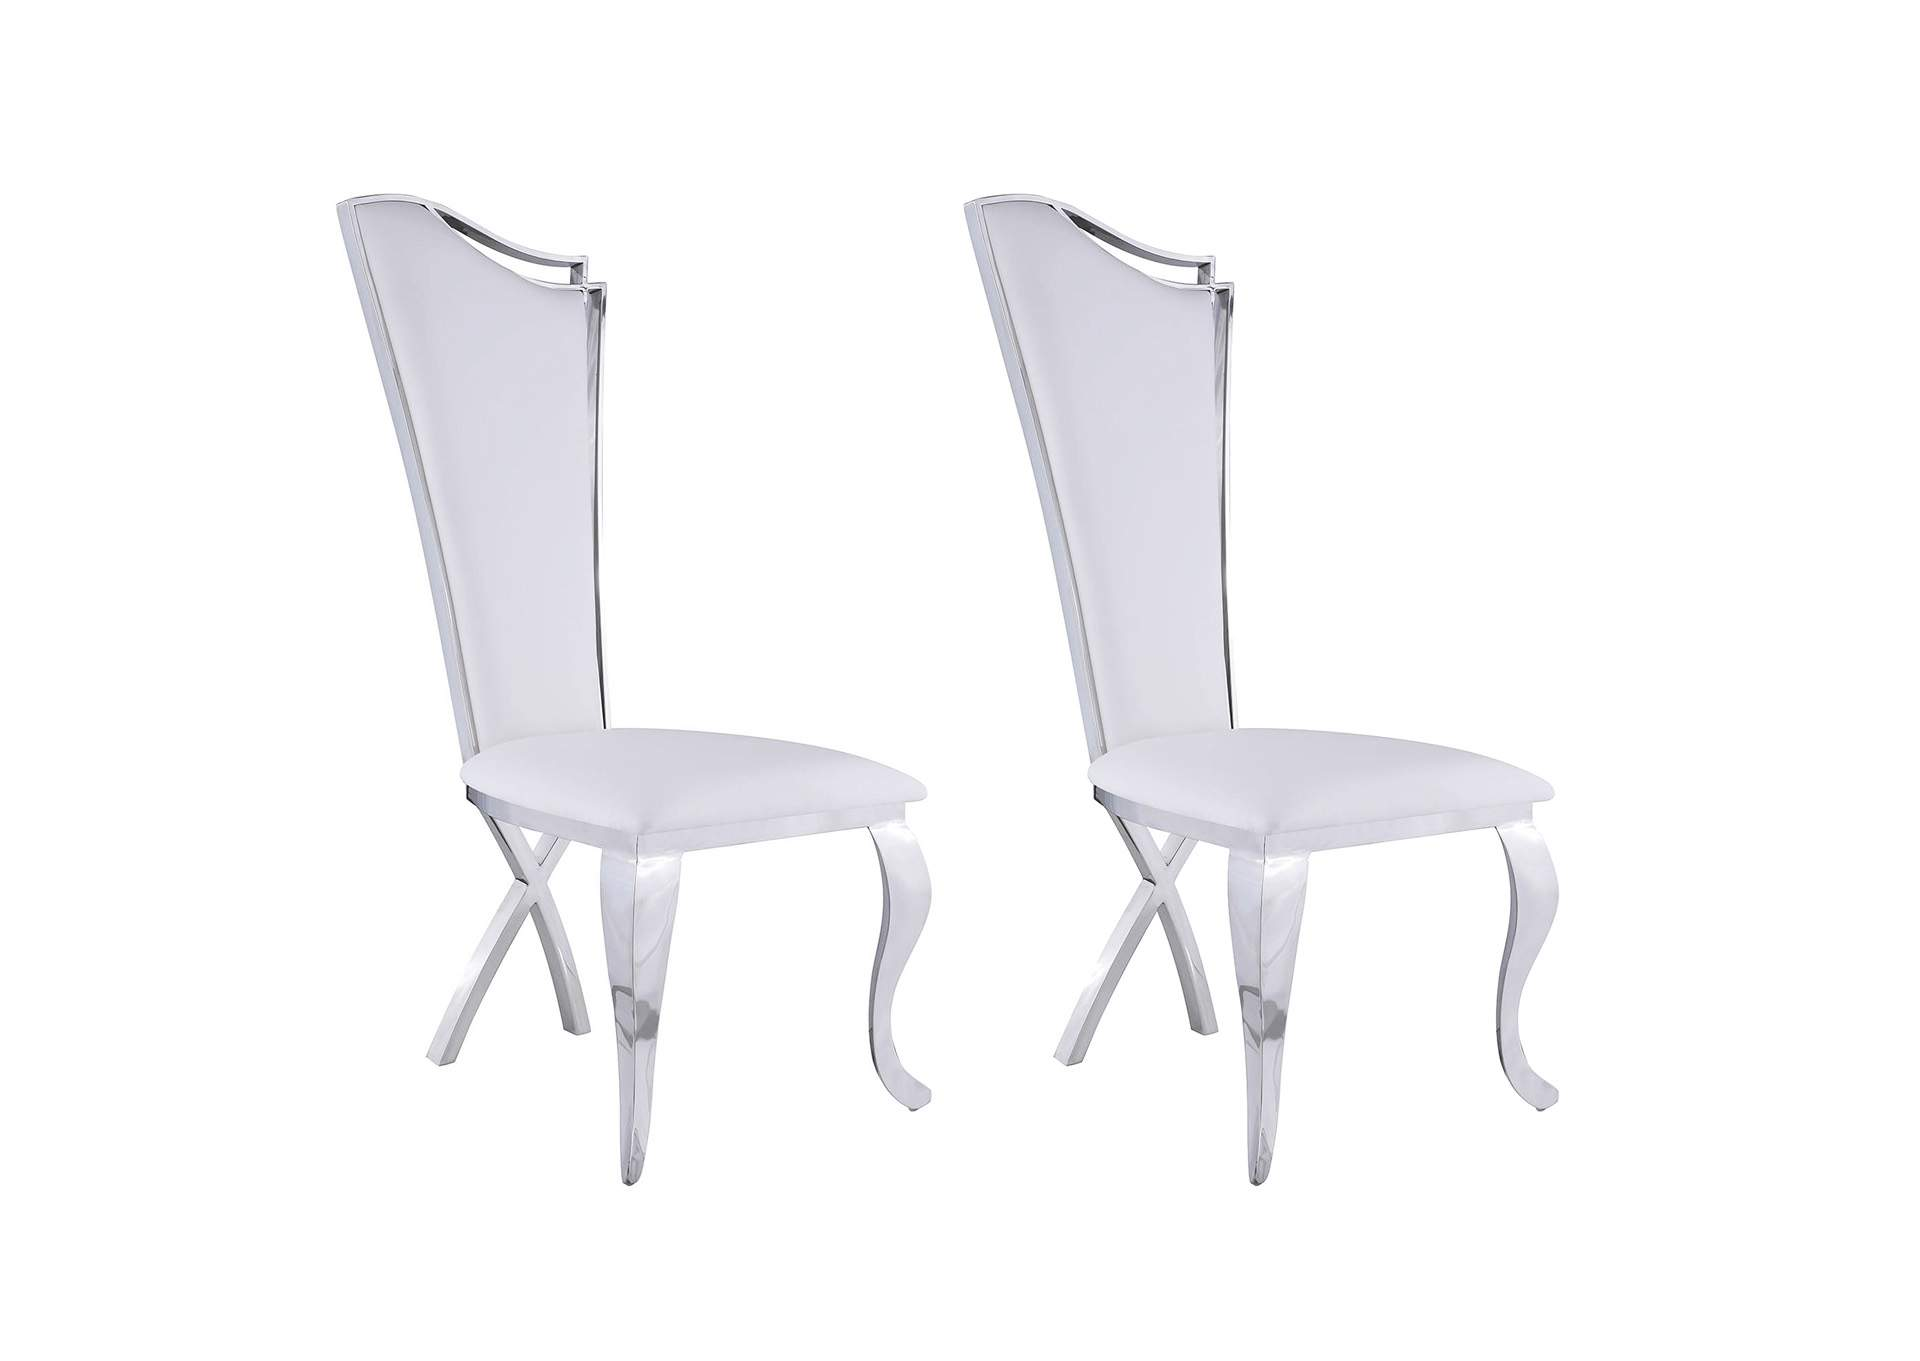 Nadia White Tall-Back Upholstered Side Chair (Set of 2),Chintaly Imports